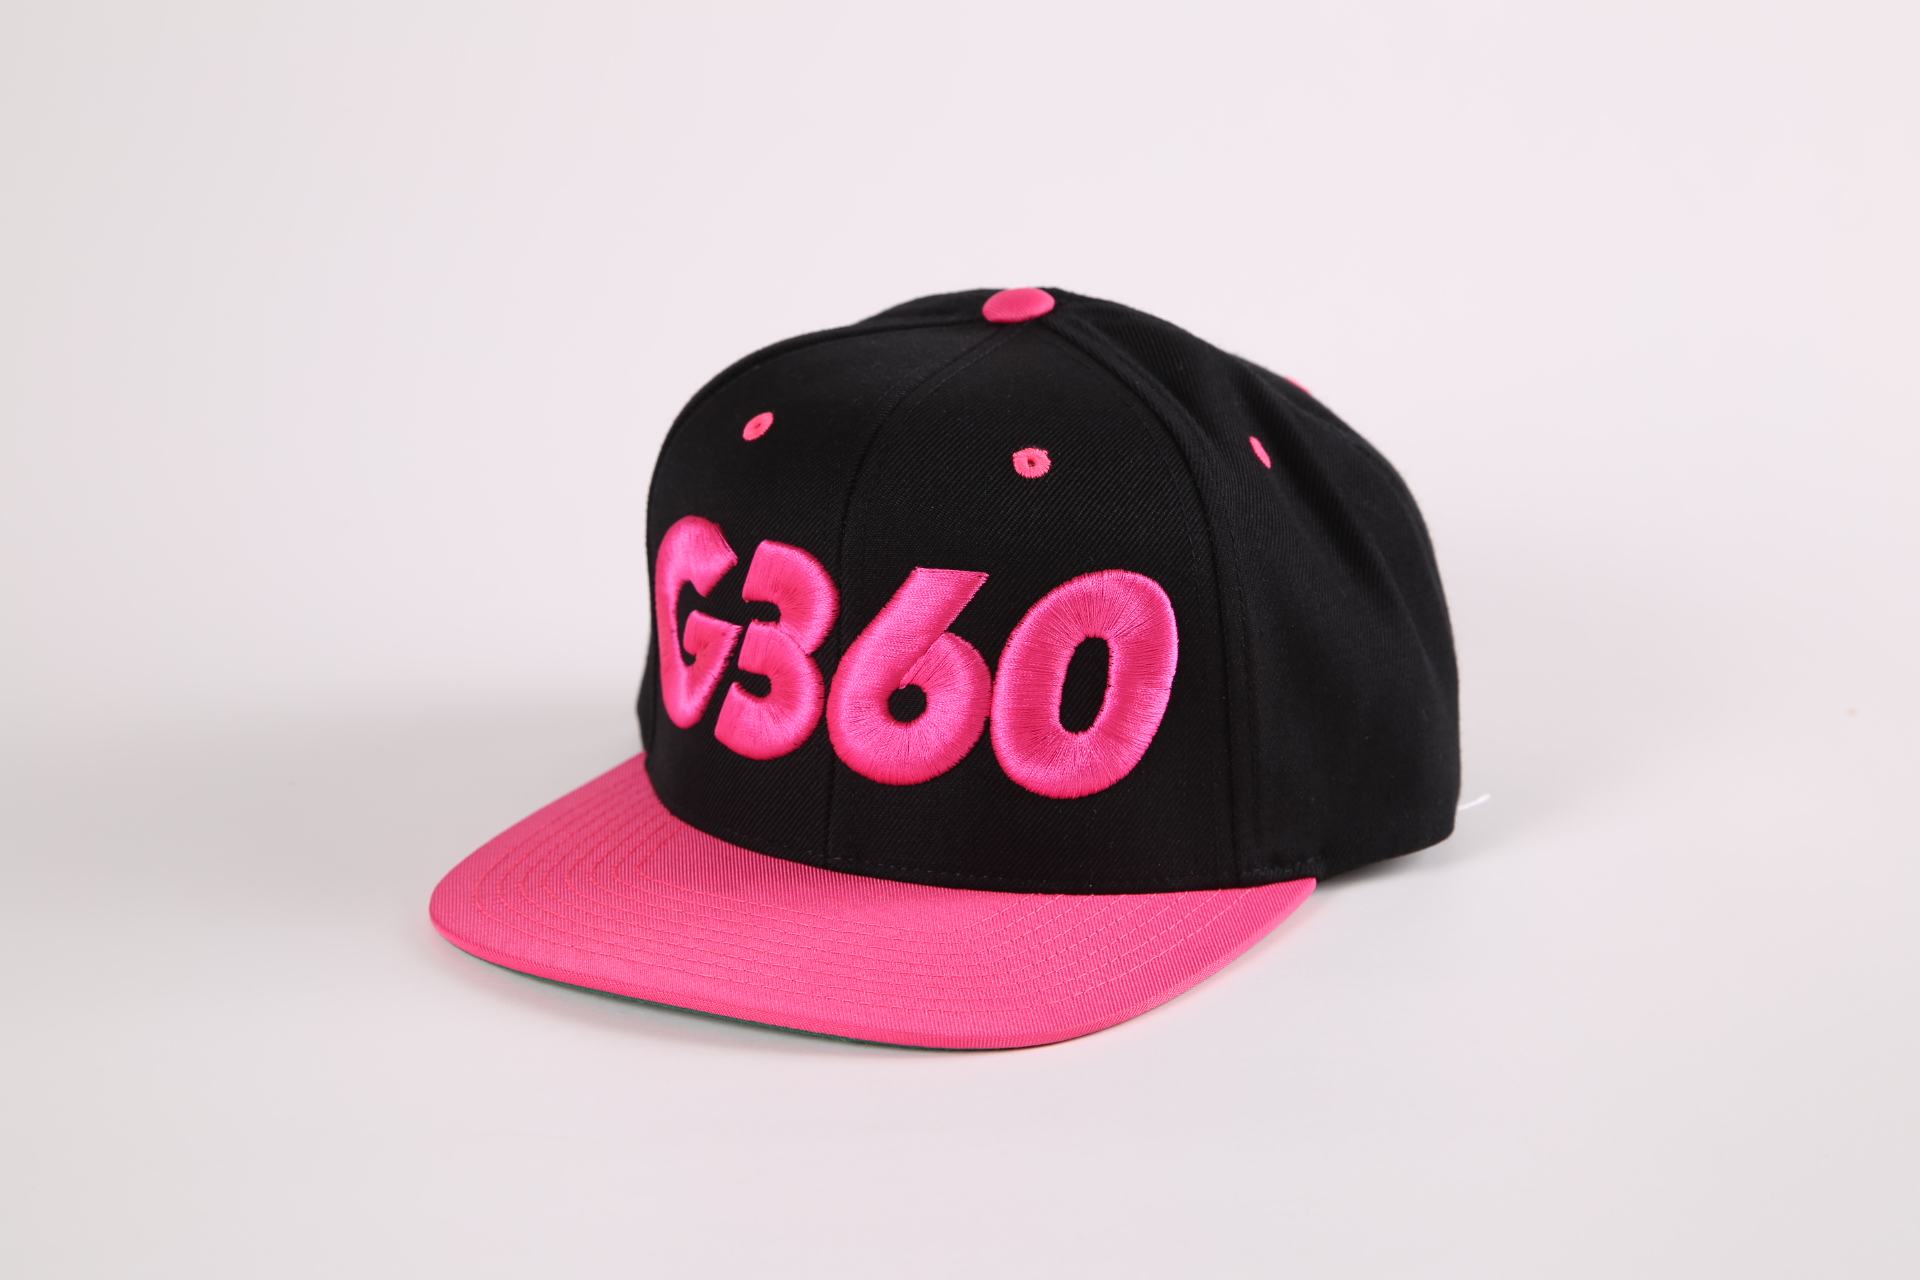 7648cc599 G-360 SNAPBACK ALL BLACK WITH PINK